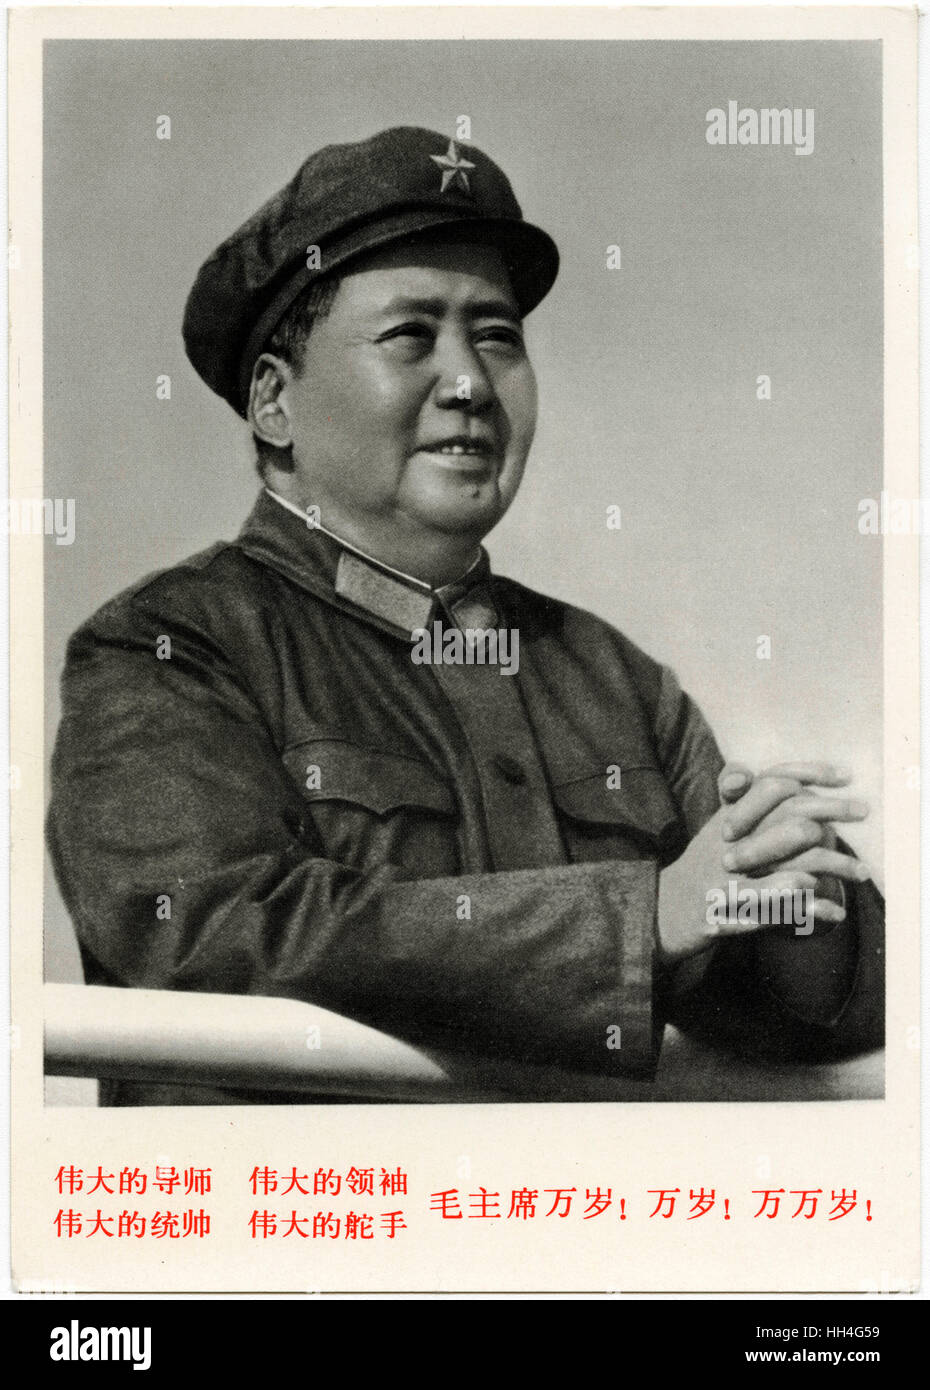 Mao Zedong (Tse-tung) often referred to as Chairman Mao (1893–1976) - Chinese Communist revolutionary, and the founding - Stock Image